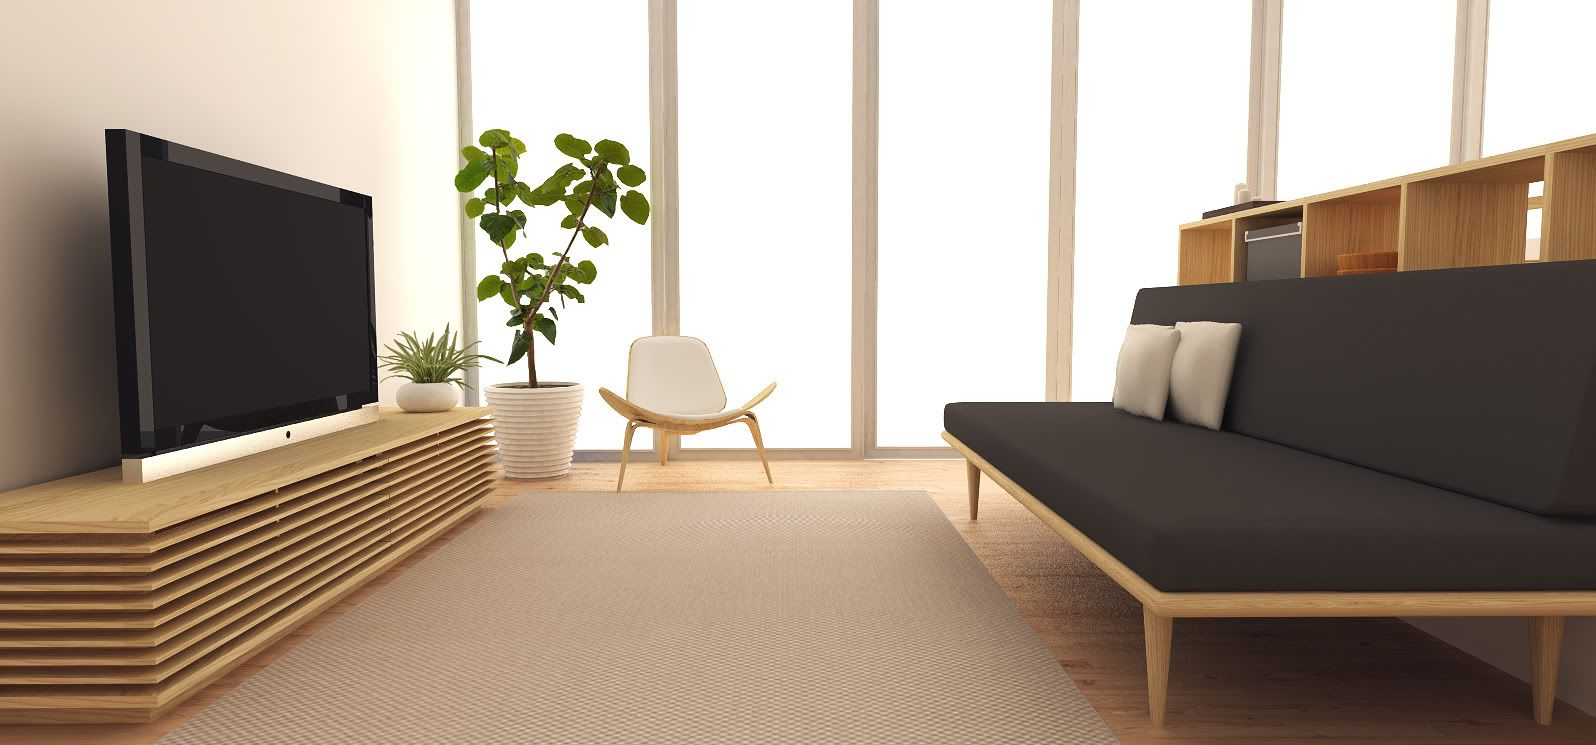 Minimalist tv console simple chair durable carpet and for Japanese minimalist interior design